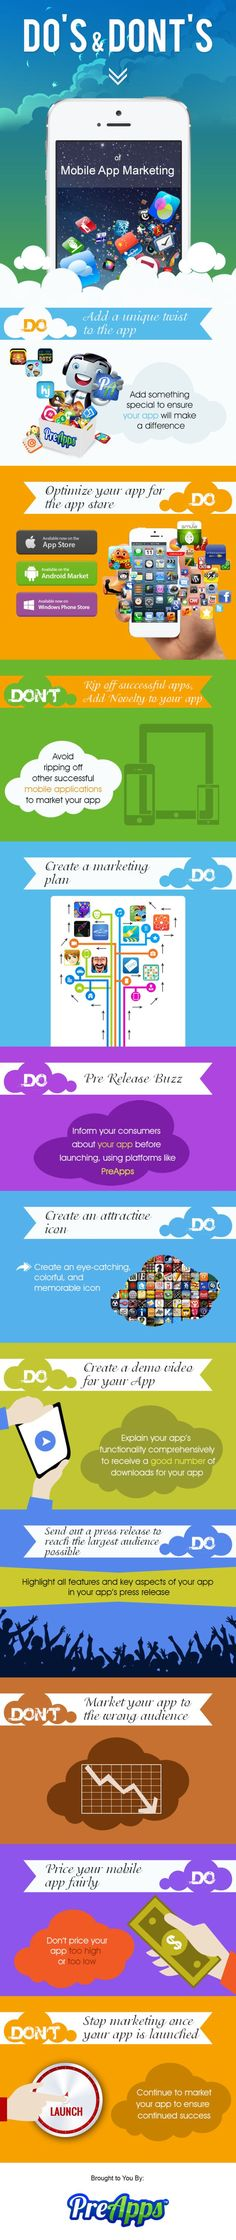 Do's & Dont's of mobile APP marketing #infografia #infographic #marketing